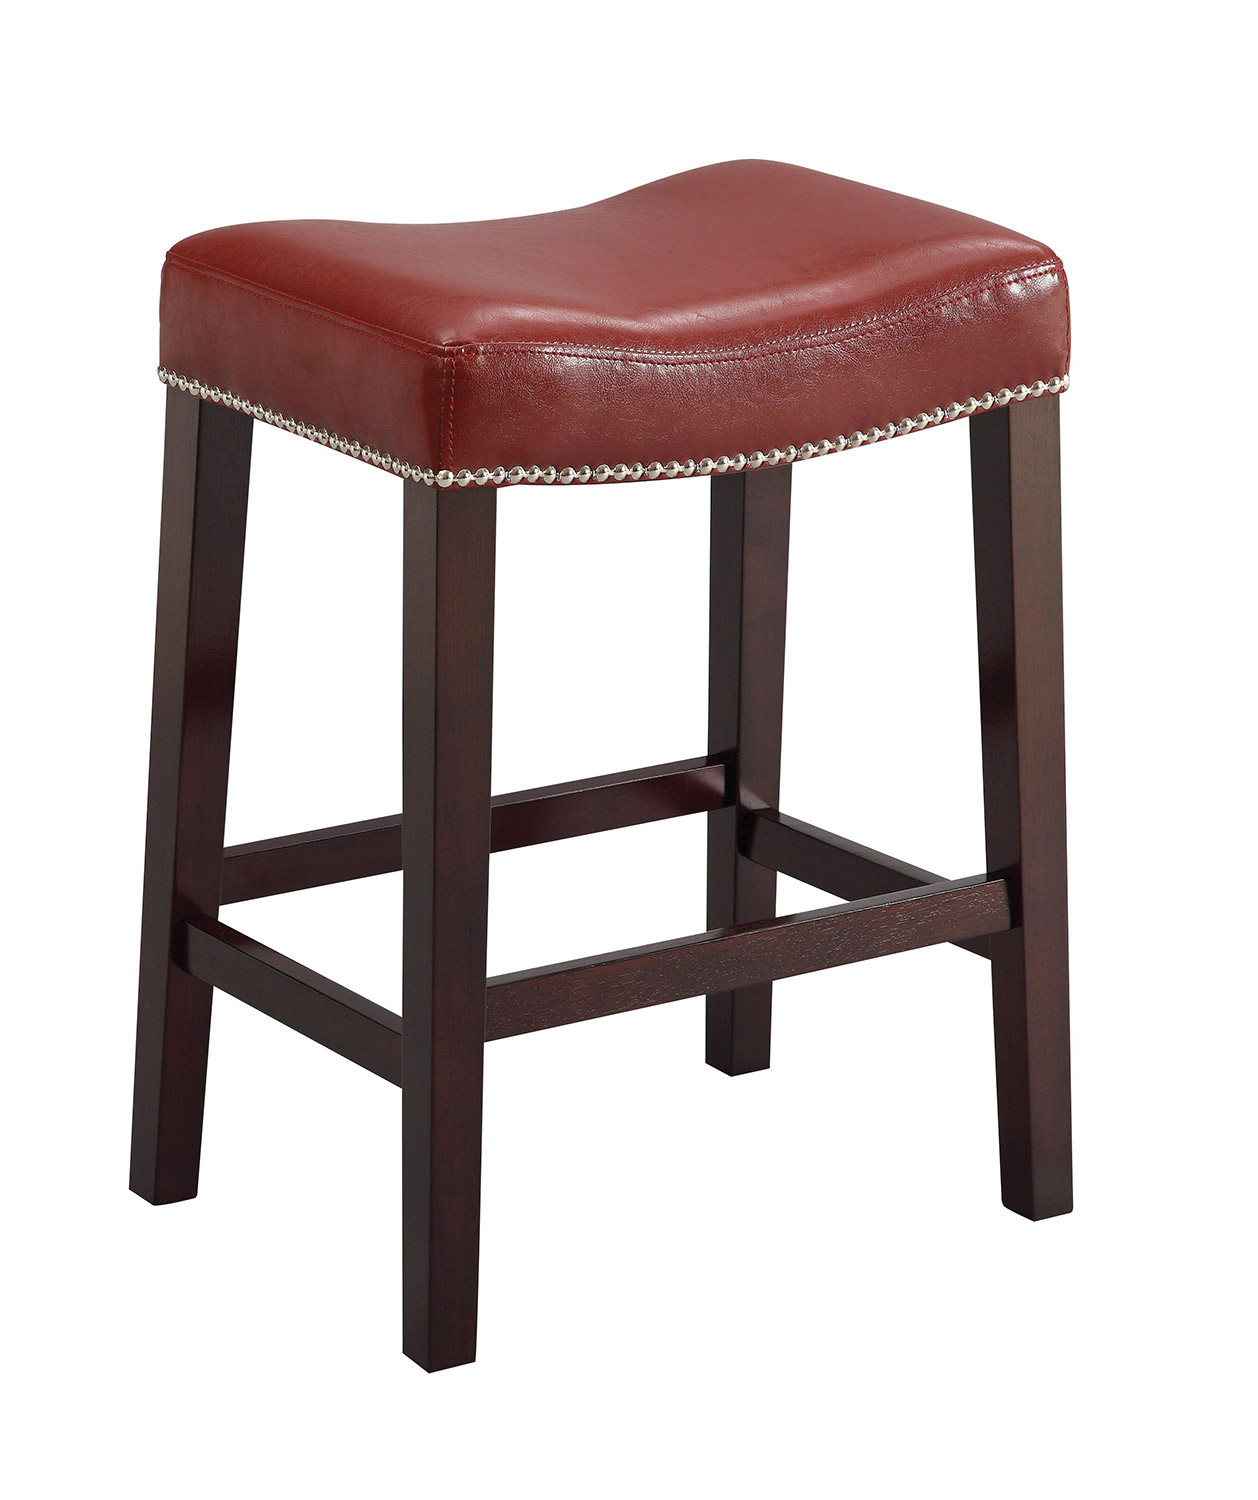 Acme Lewis Counter Height Stool - Red Vinyl/Espresso